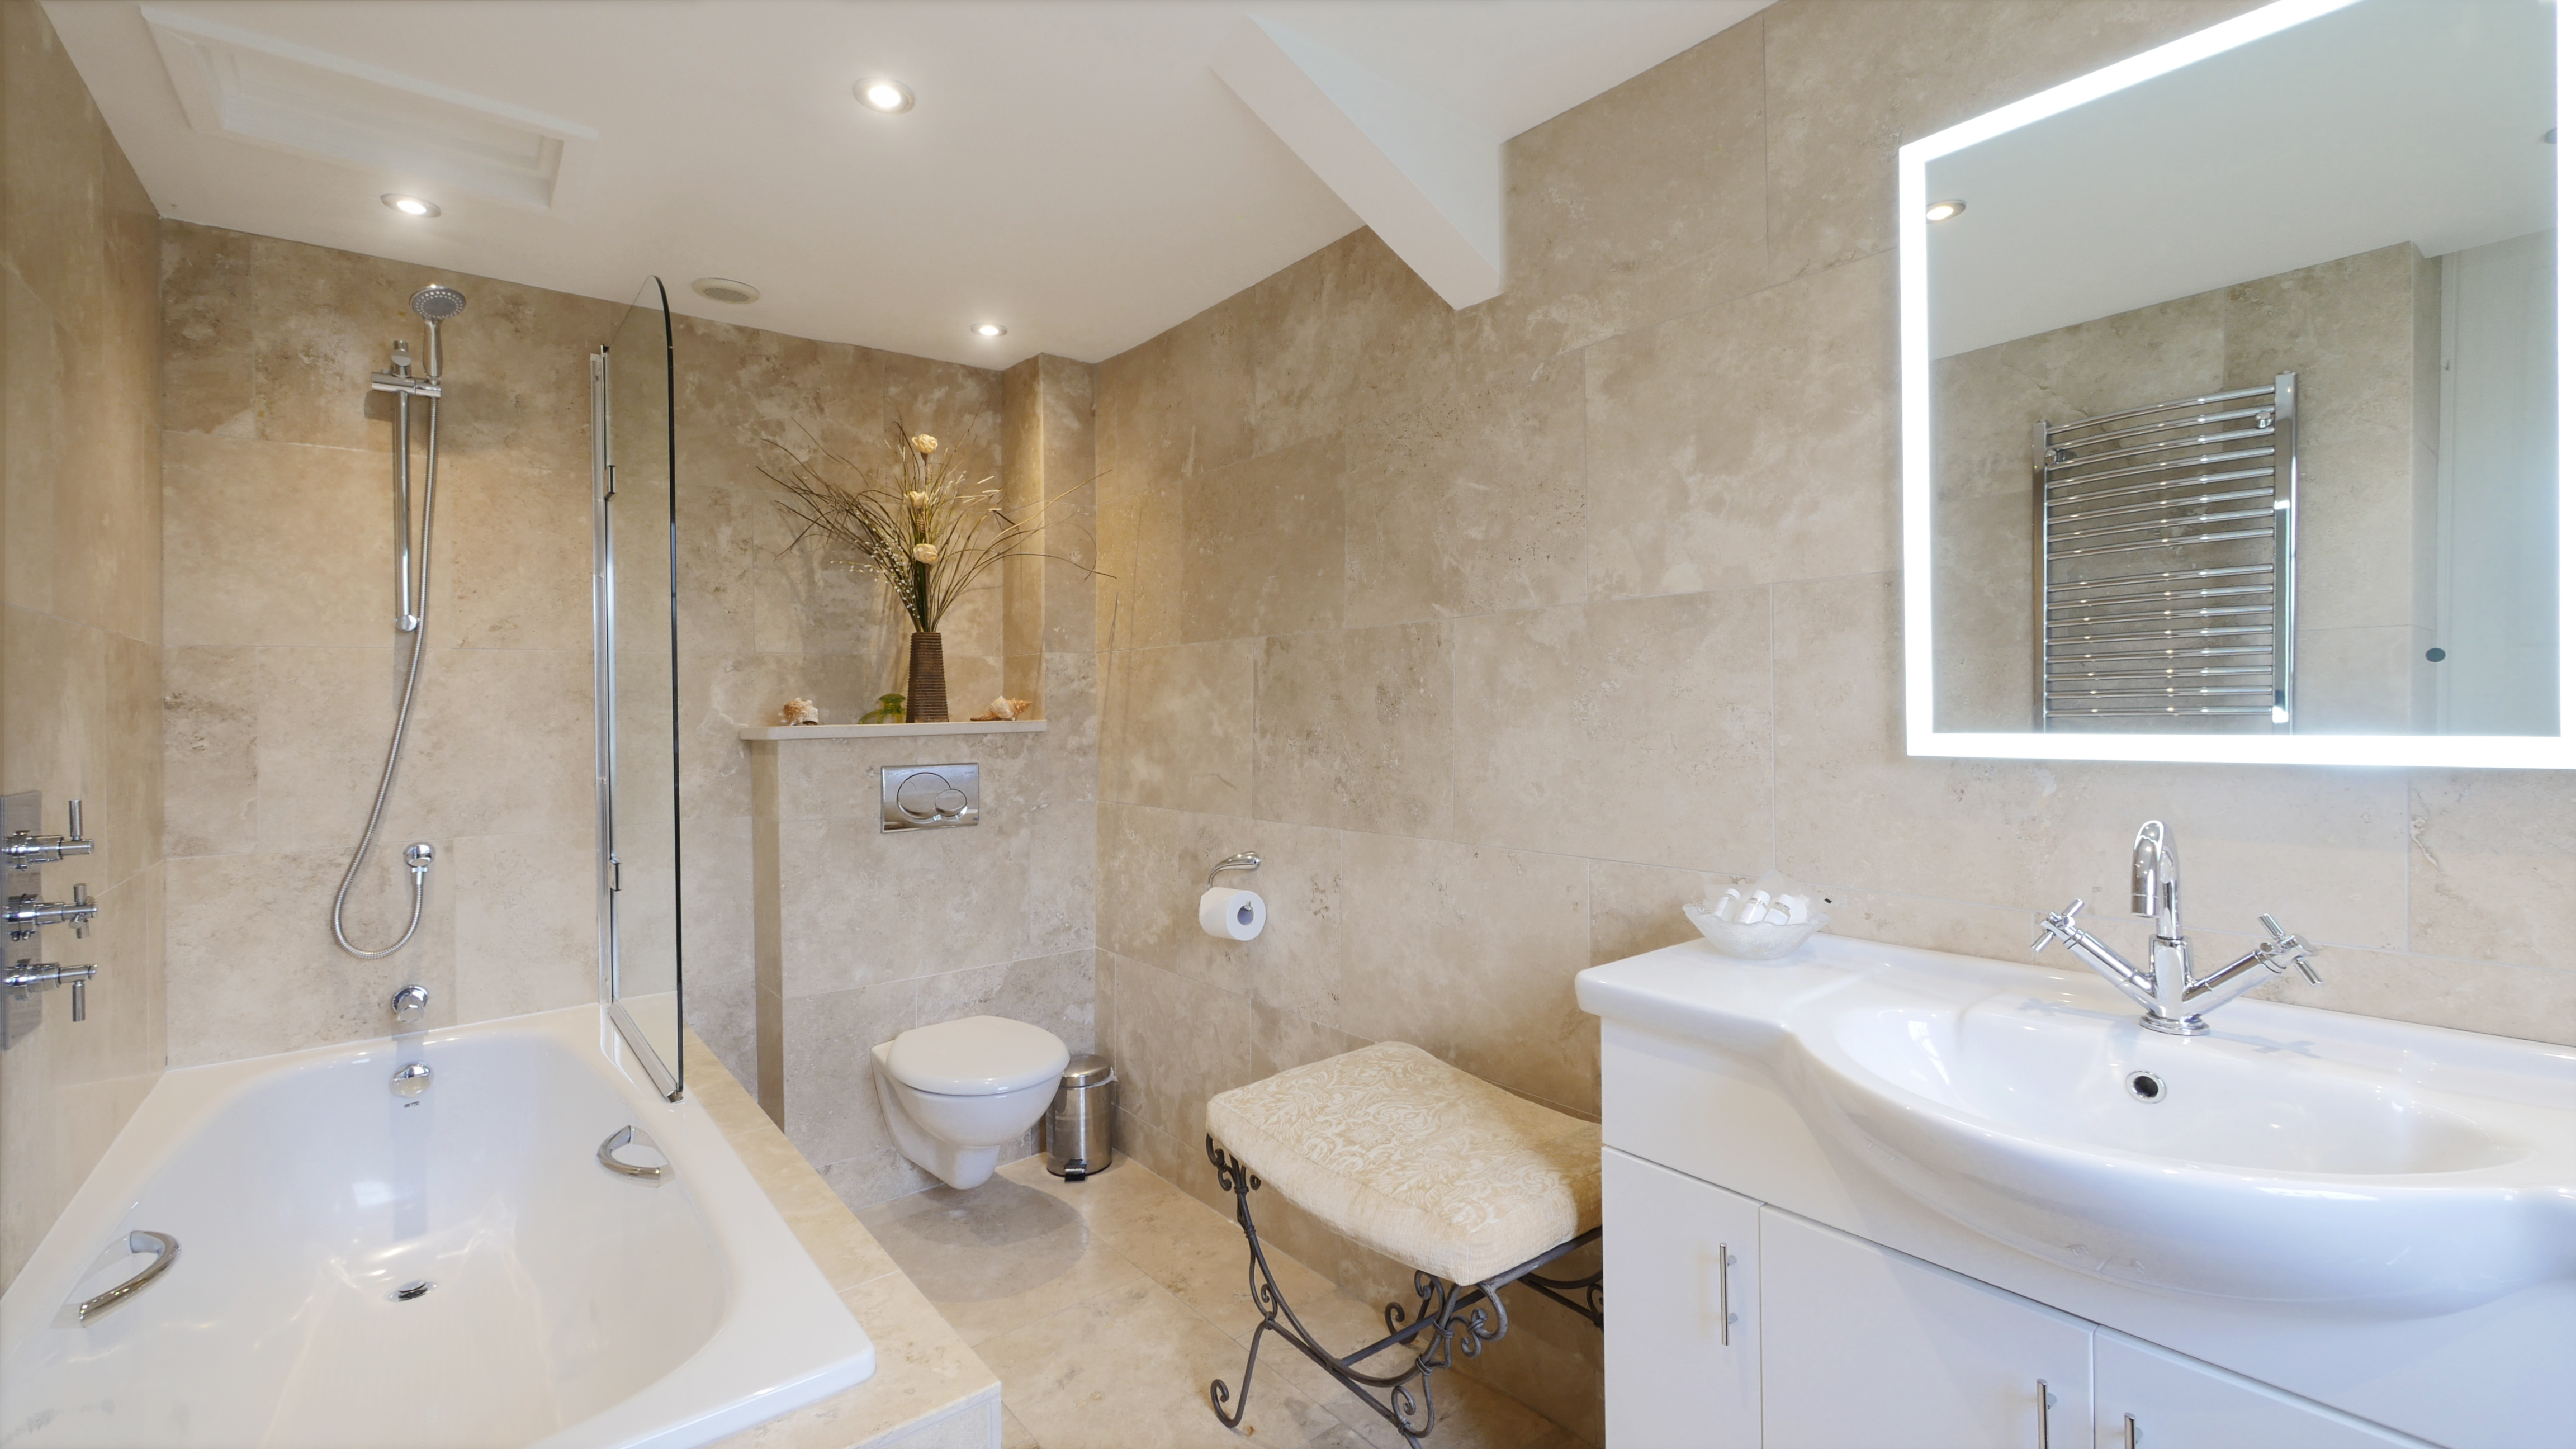 Coquet View luxury holiday accommodation in Warkworth Northumberland near the beach pet friendly